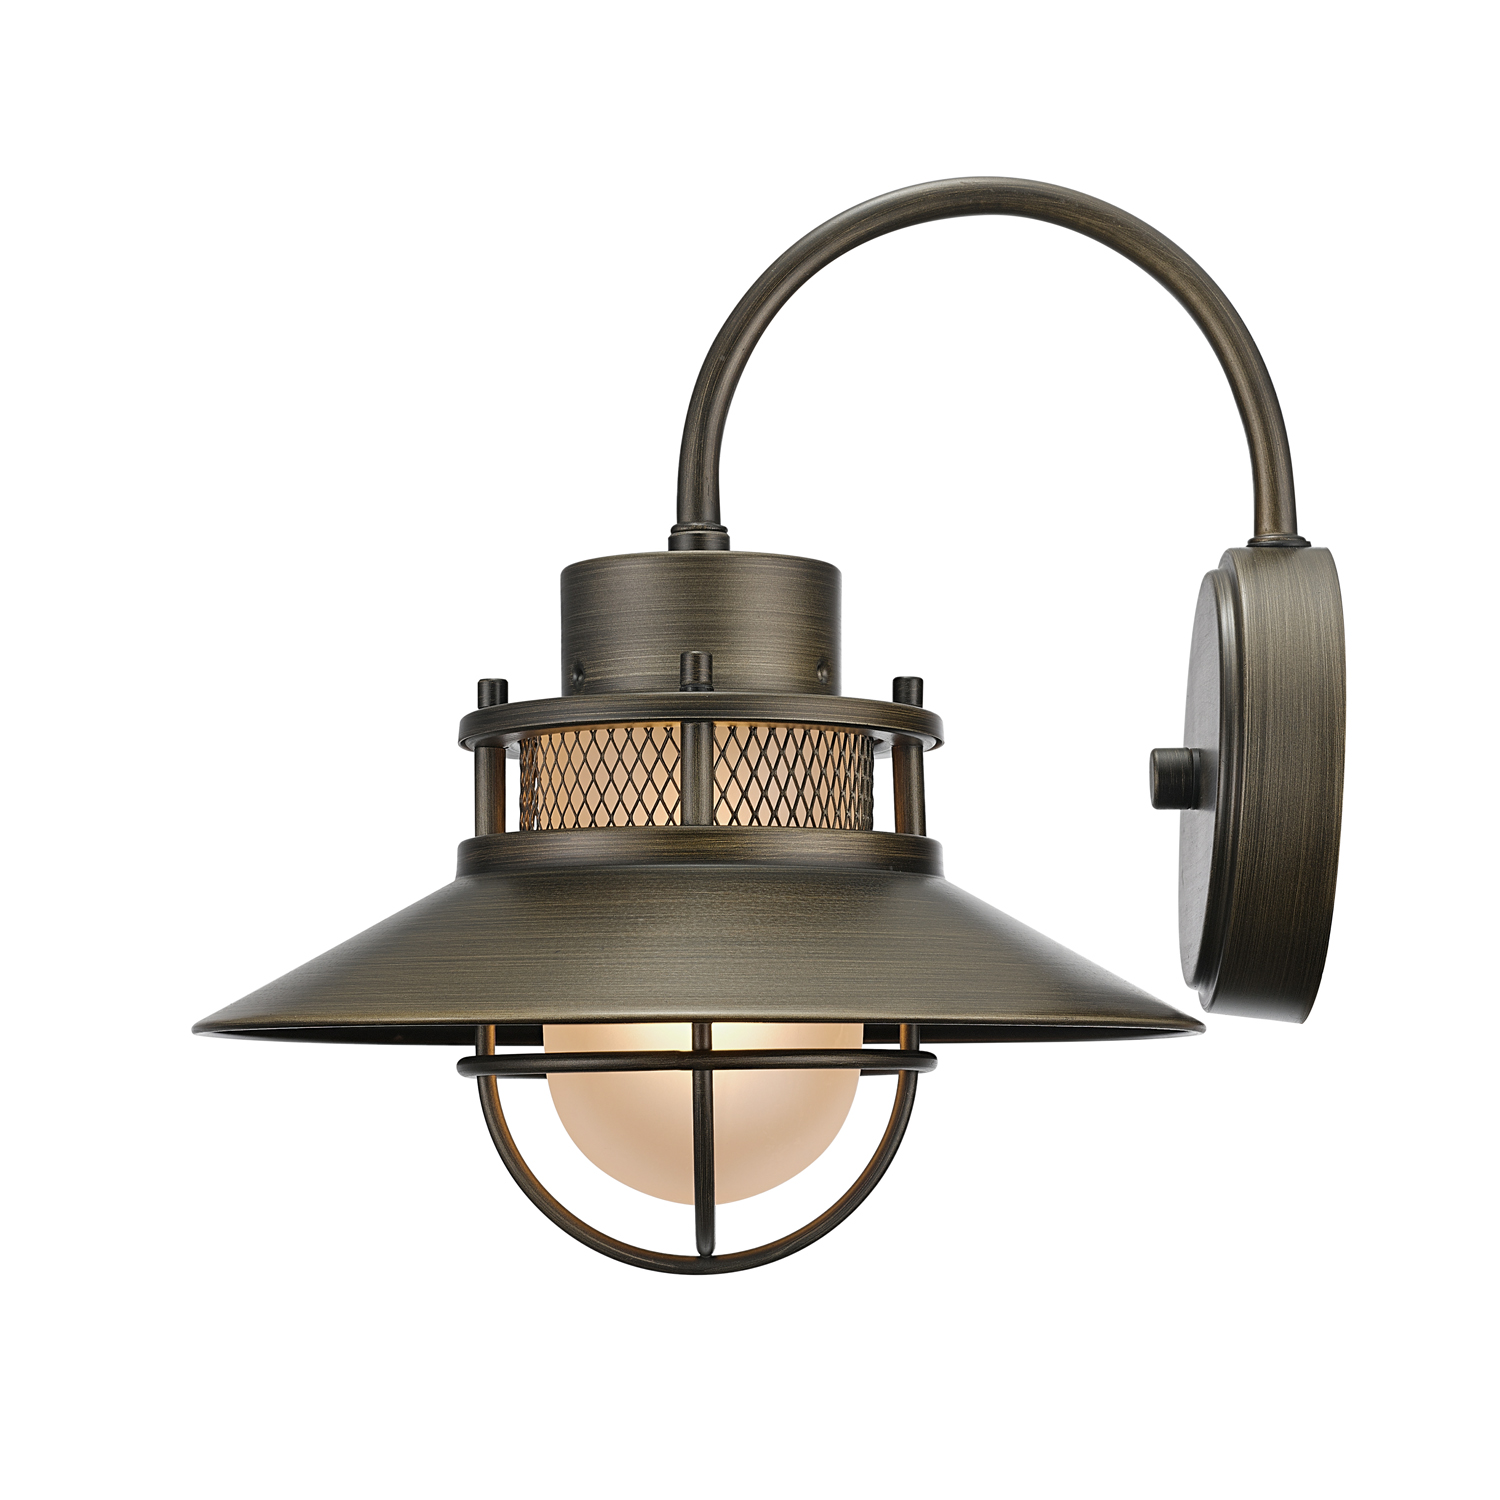 Globe Electric Liam 1-Light Bronze Outdoor Indoor Wall Sconce with Frosted Glass Shade, 44097